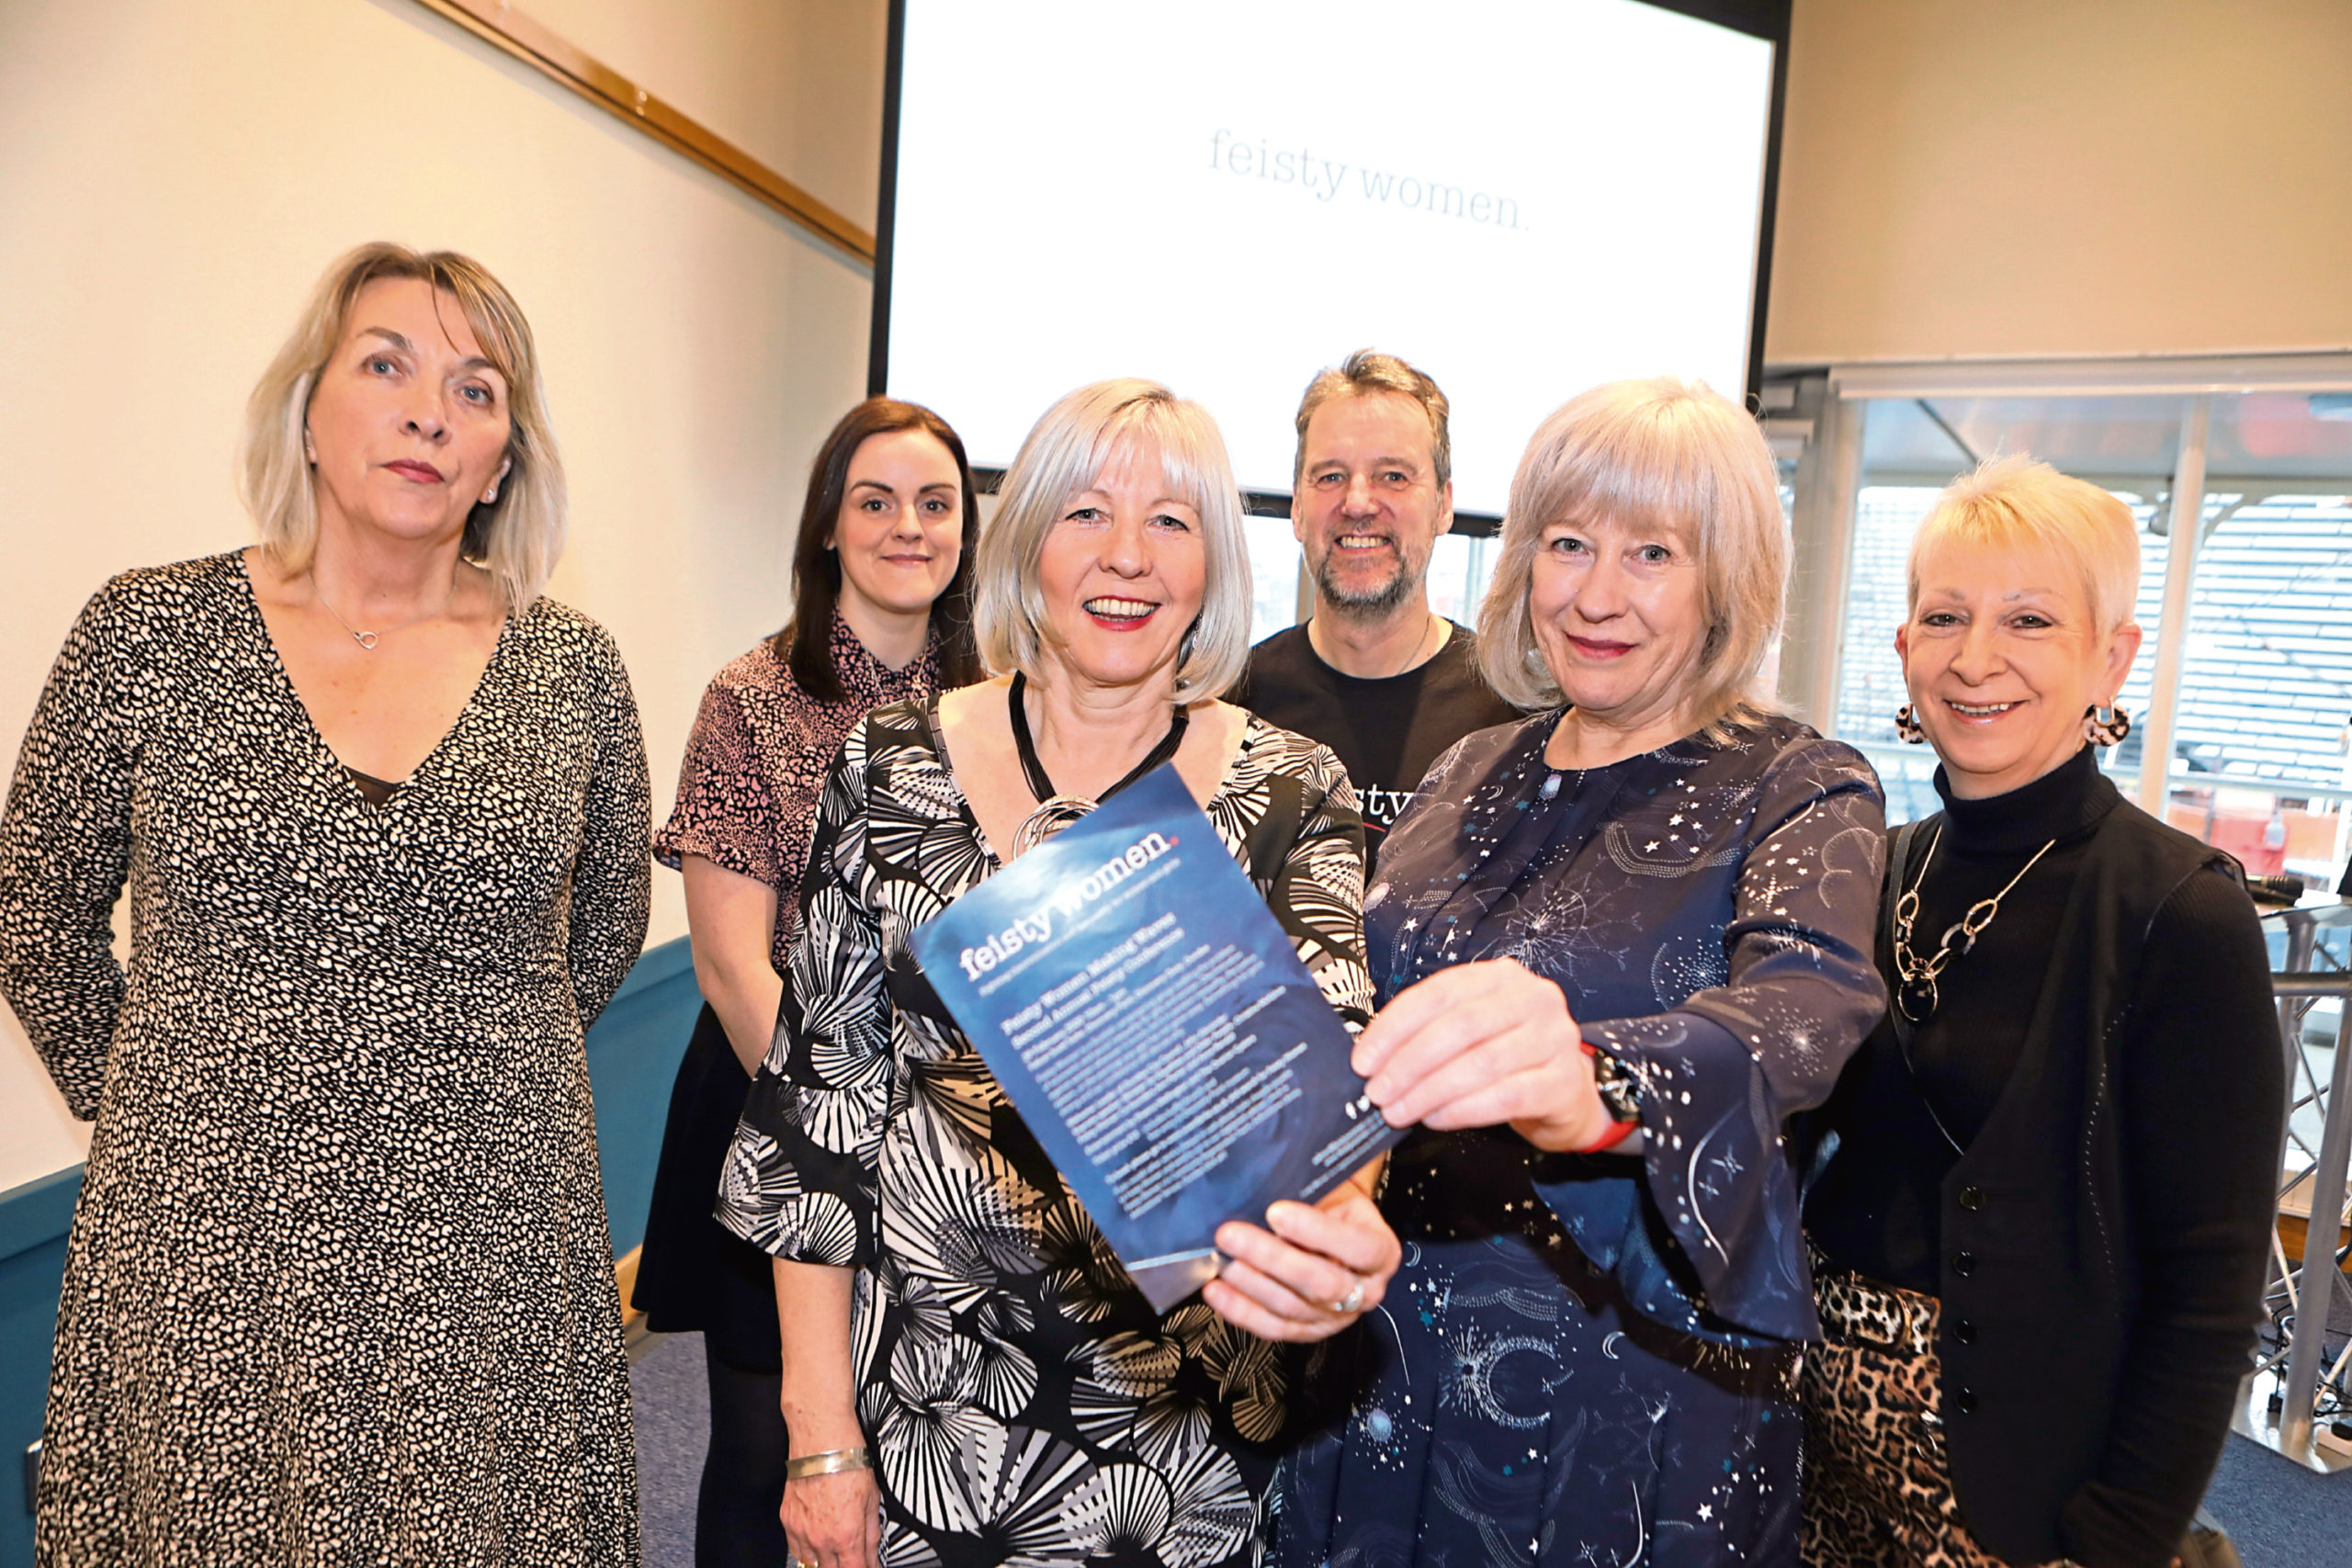 Picture shows committee members and speakers, from left: Elizabeth Shearer, Sam Walker, Anne Rendall, Richard Gourlay, Ann Porter and Irene Duncan.